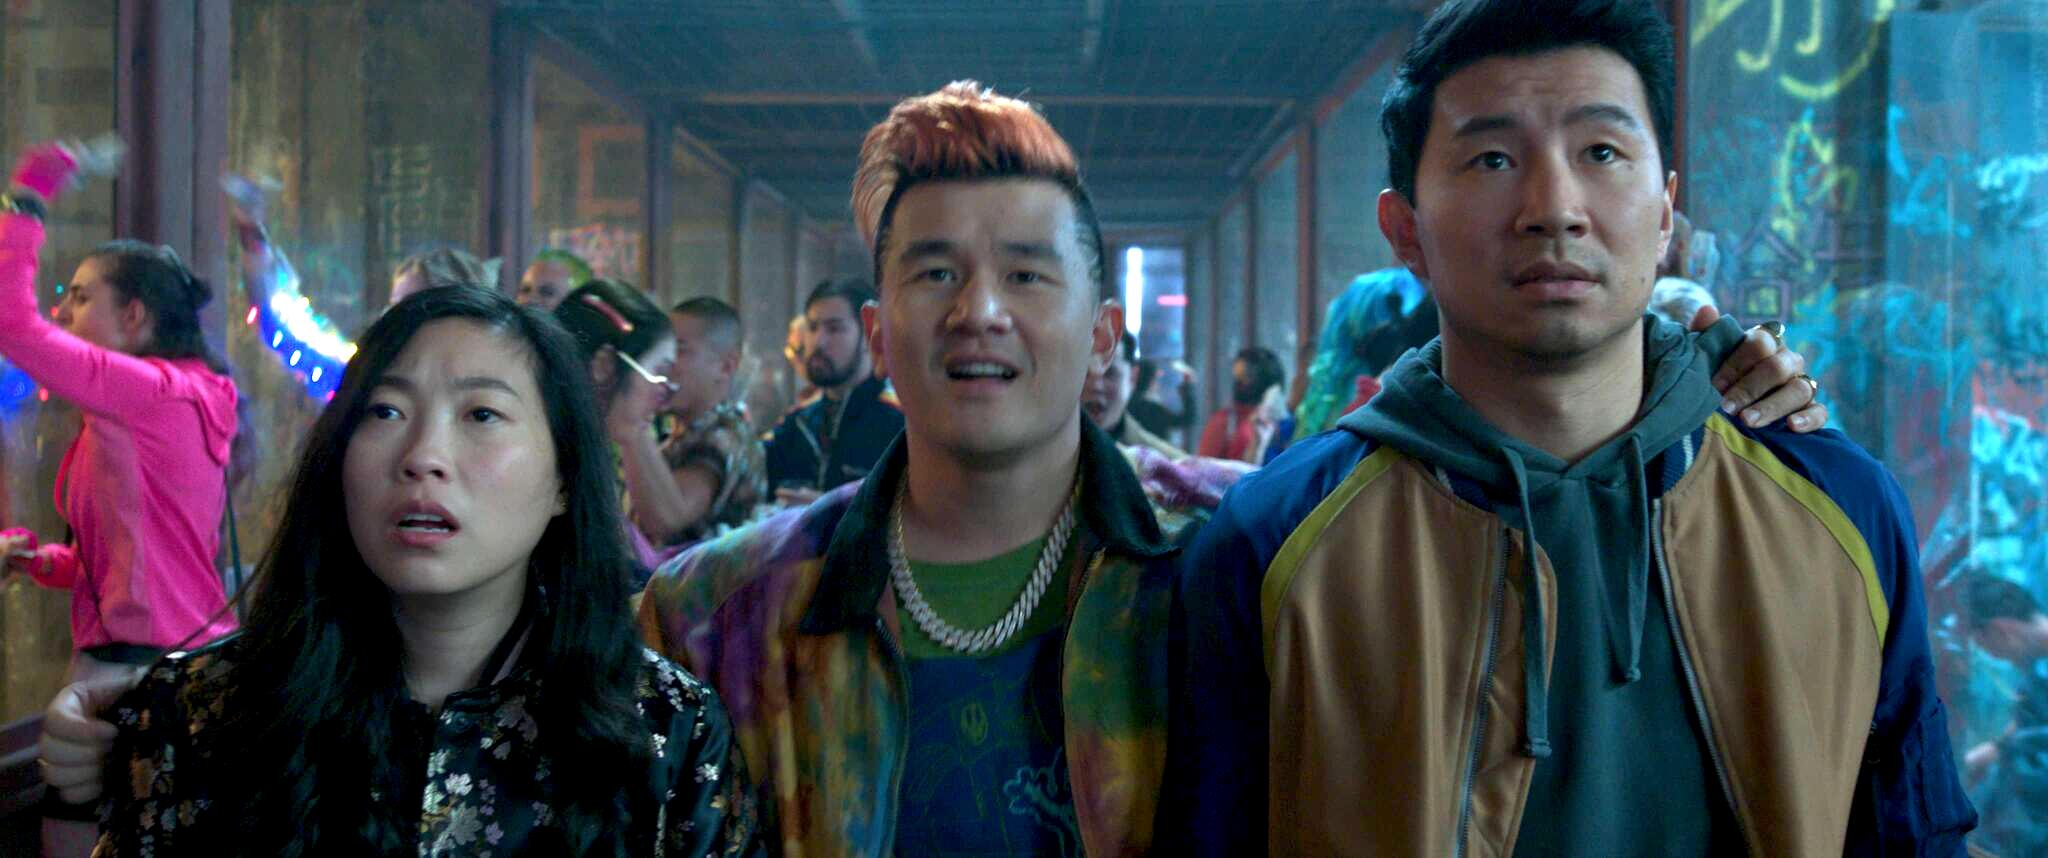 (L-R): Katy (Awkwafina), Jon Jon (Ronny Chieng) and Shang-Chi (Simu Liu) in Marvel Studios' SHANG-CHI AND THE LEGEND OF THE TEN RINGS.